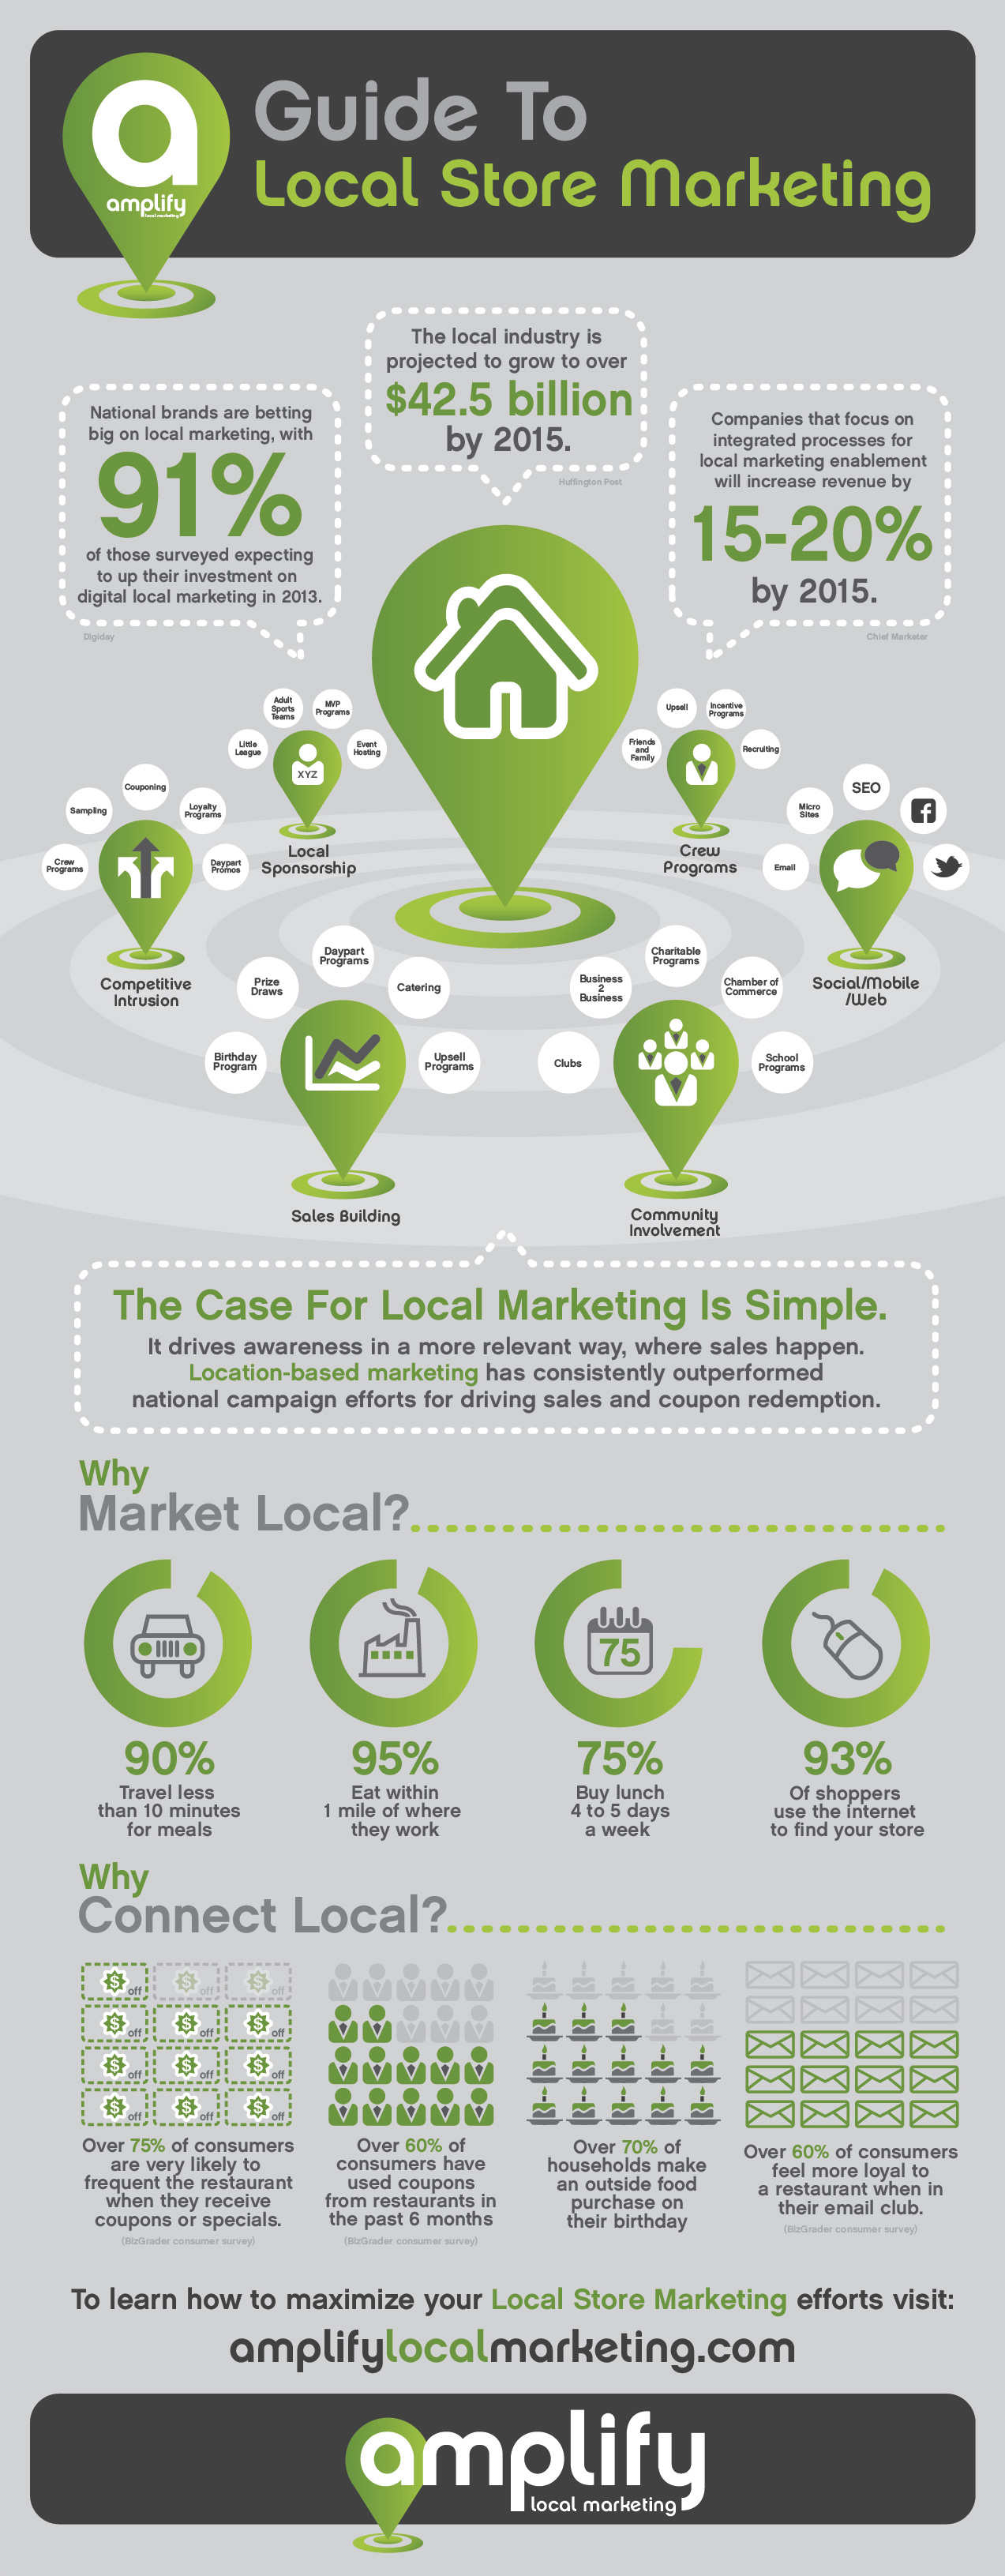 http://amplifylocalmarketing.com/wp-content/uploads/2013/02/Amplify-Infographics.jpg